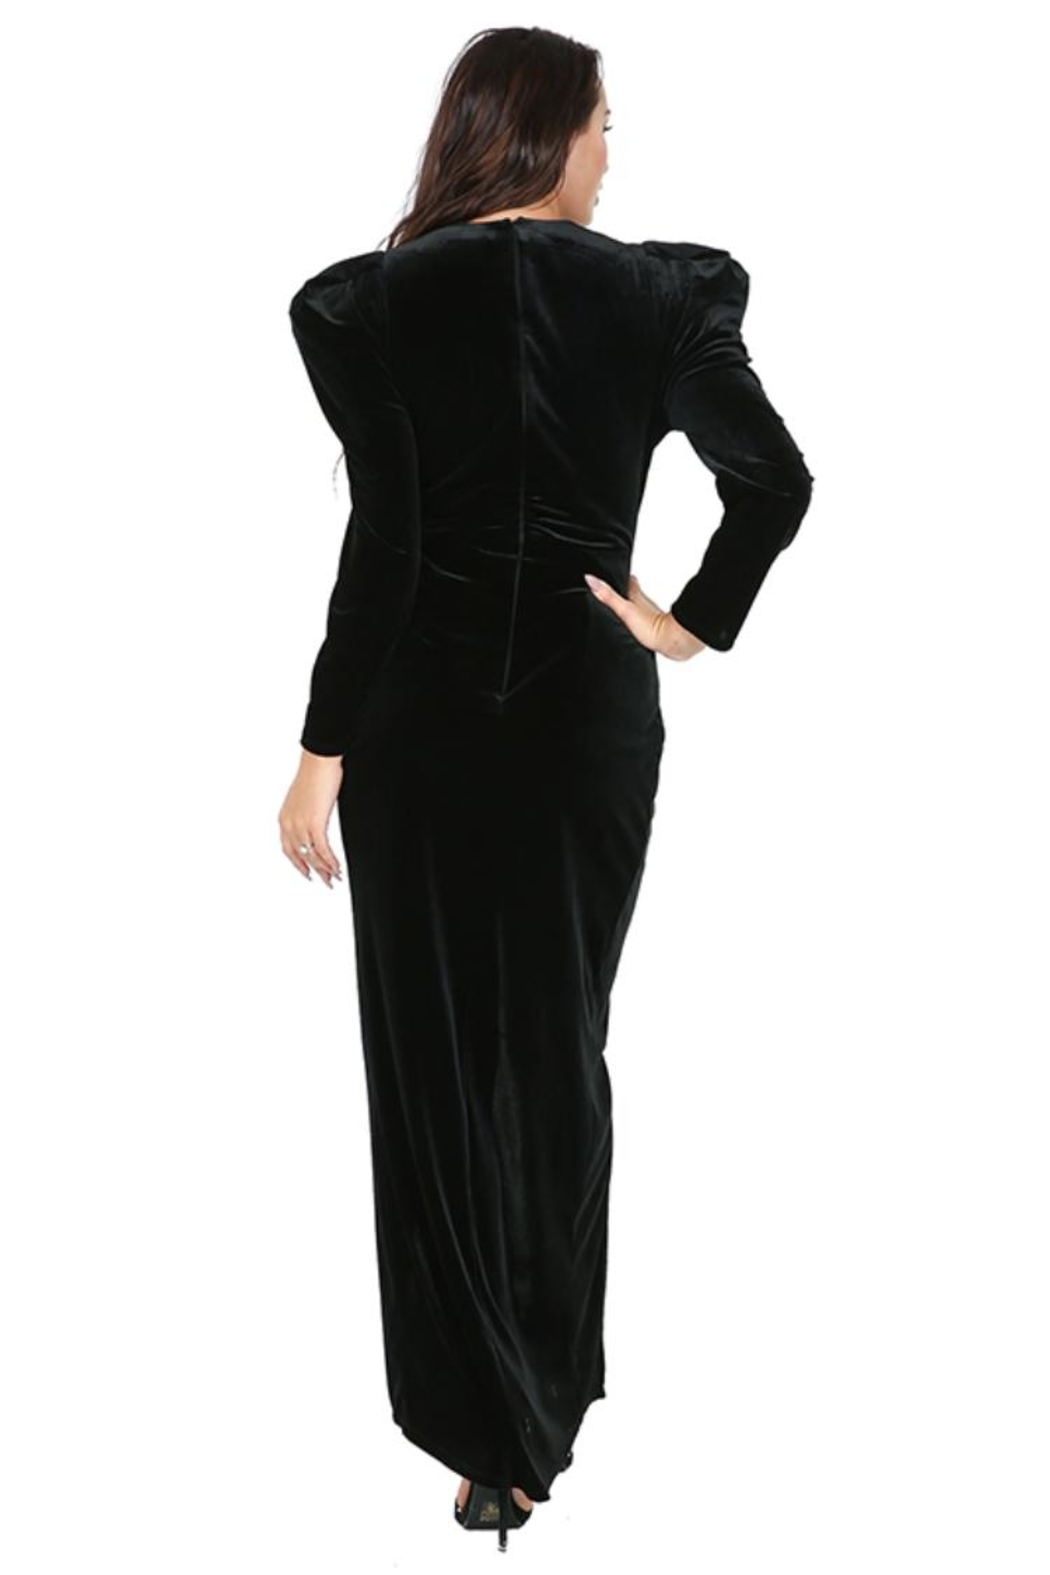 cq by cq Hi-Low Velvet Dress - Side Cropped Image